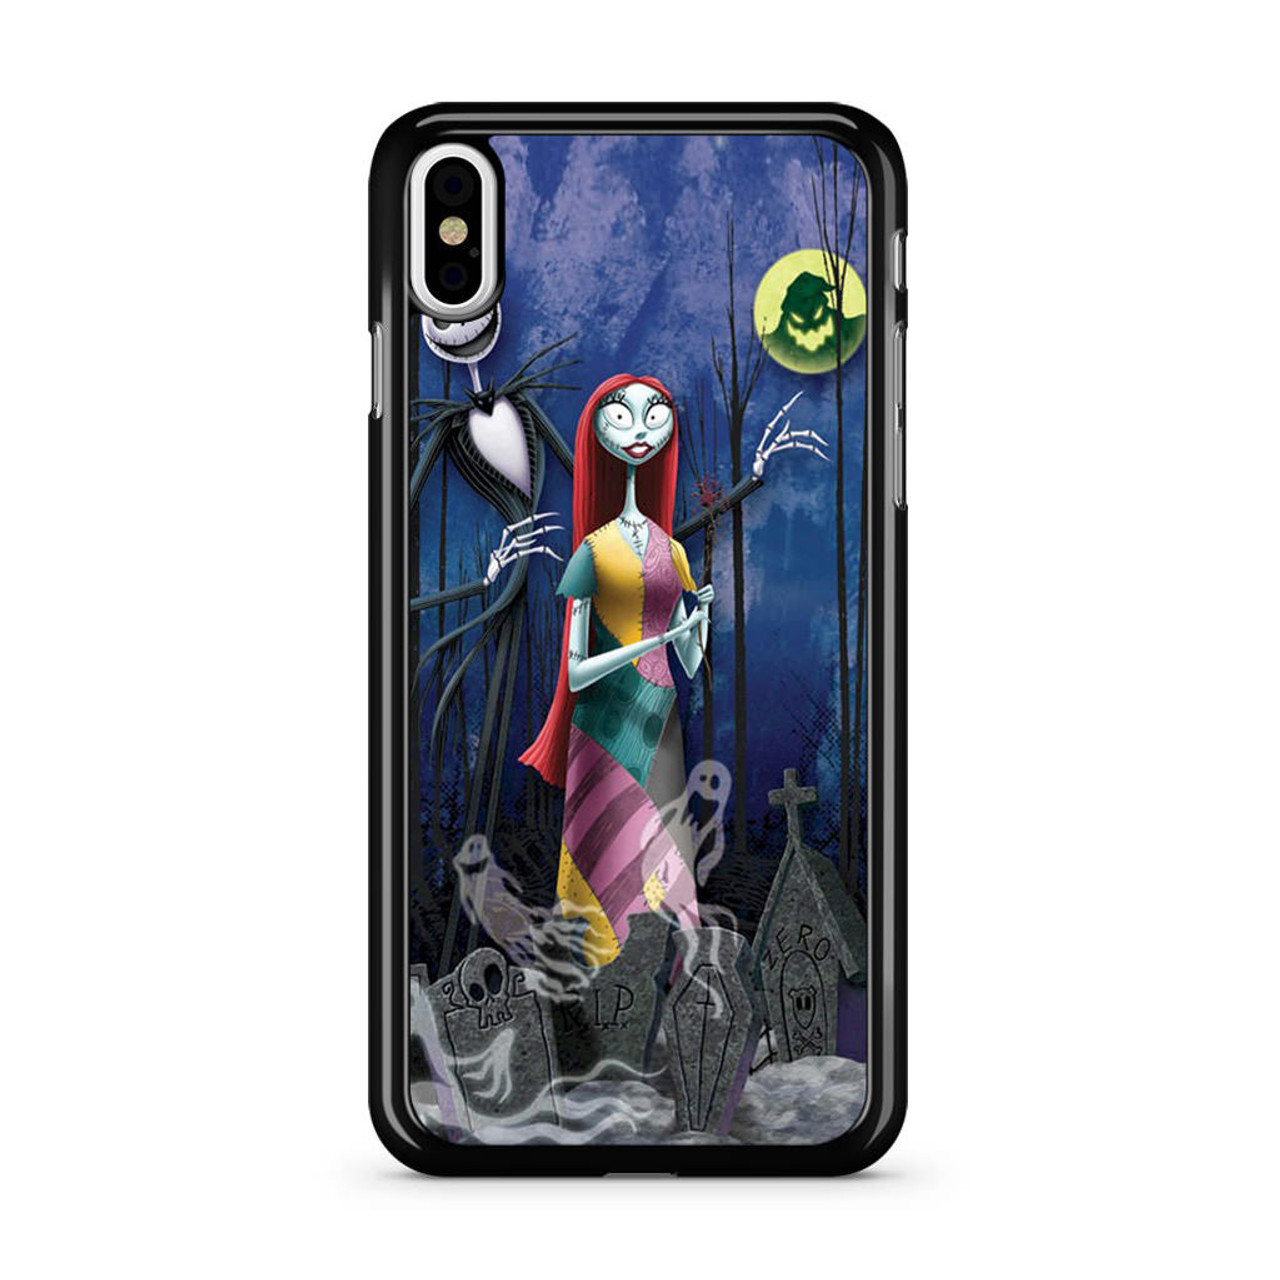 Christmas Iphone X Case.Nightmare Before Christmas Romance Iphone X Case